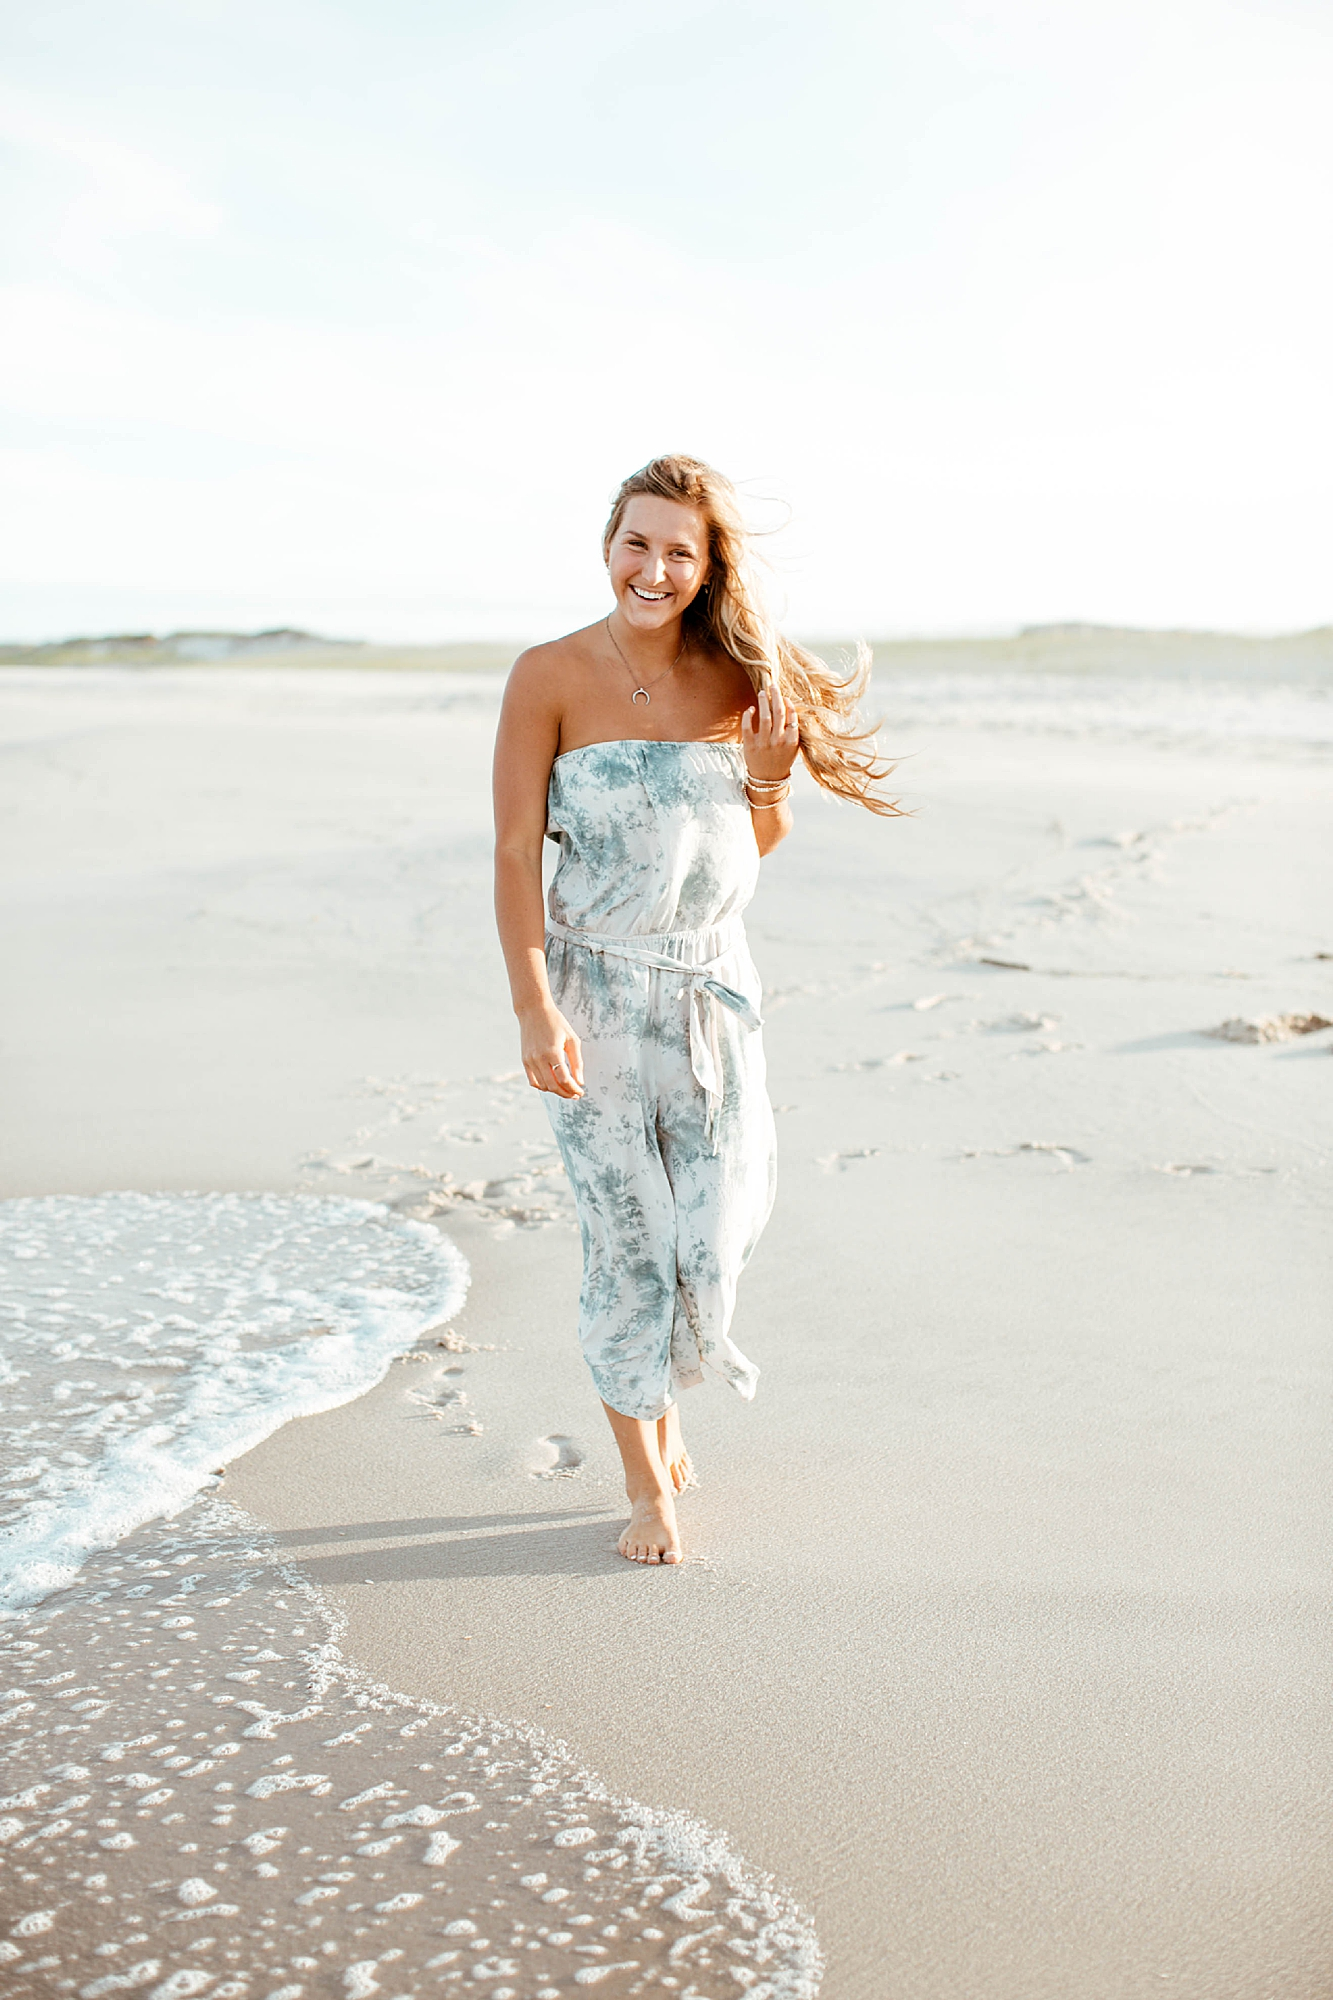 Natural and Bright Seaside Park New Jersey Boho Lifestlyle Beach Portrait Photography by Kelee Bovelle_0011.jpg